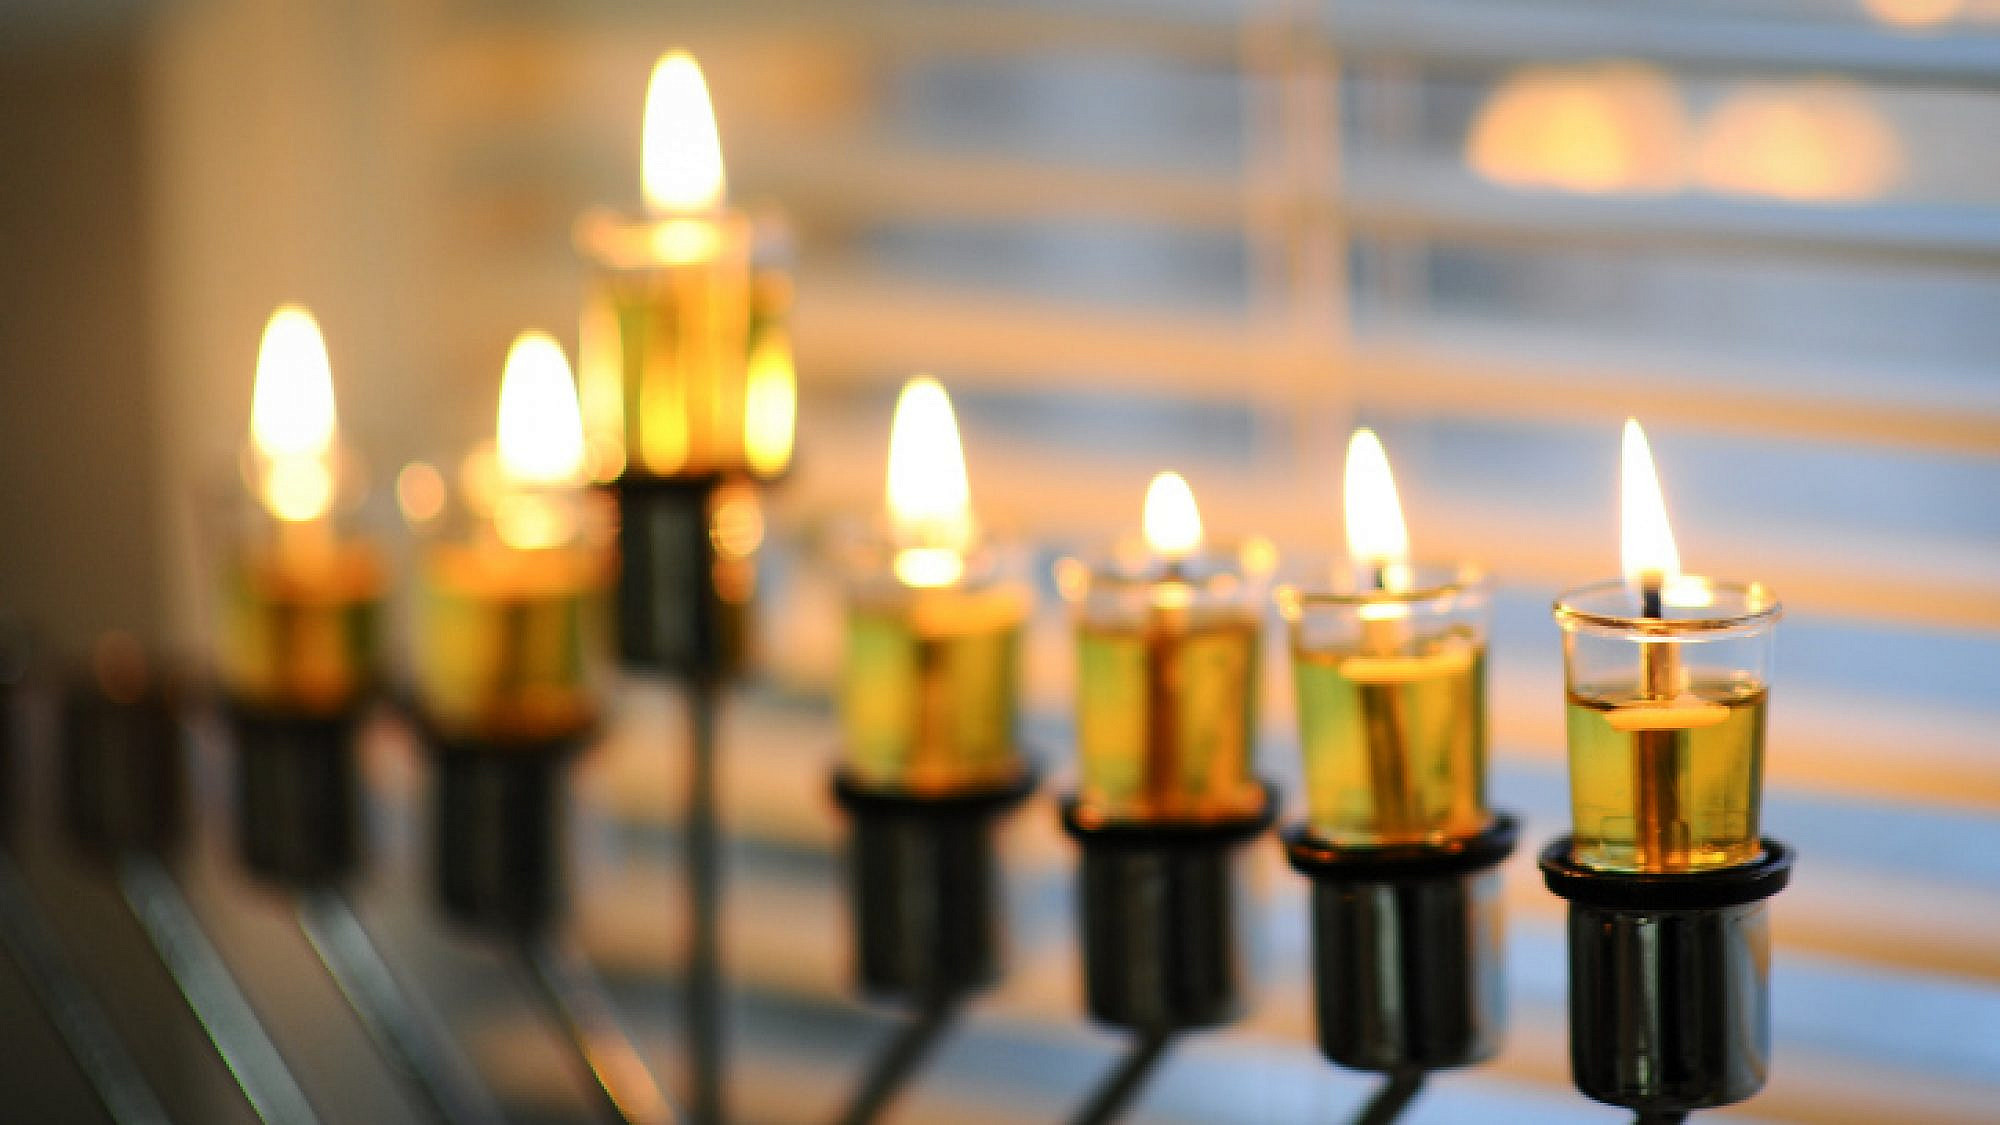 Illustration of a lit menorah on the sixth night of the Jewish holiday of Hanukkah. Photo by Mendy Hechtman/Flash90.